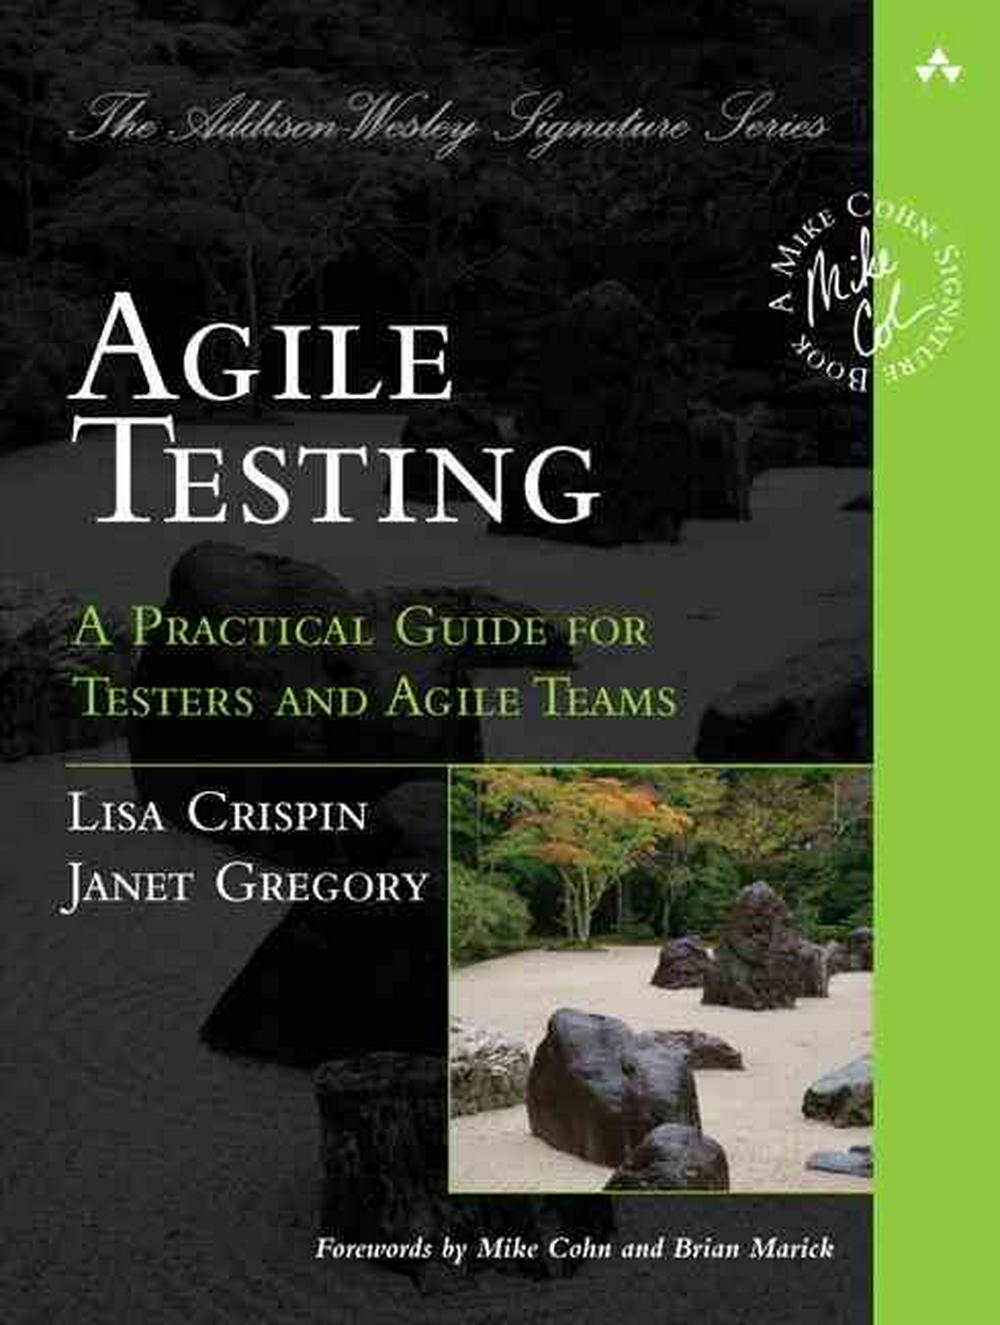 Cover Art for Agile Testing, ISBN: 9780321534460